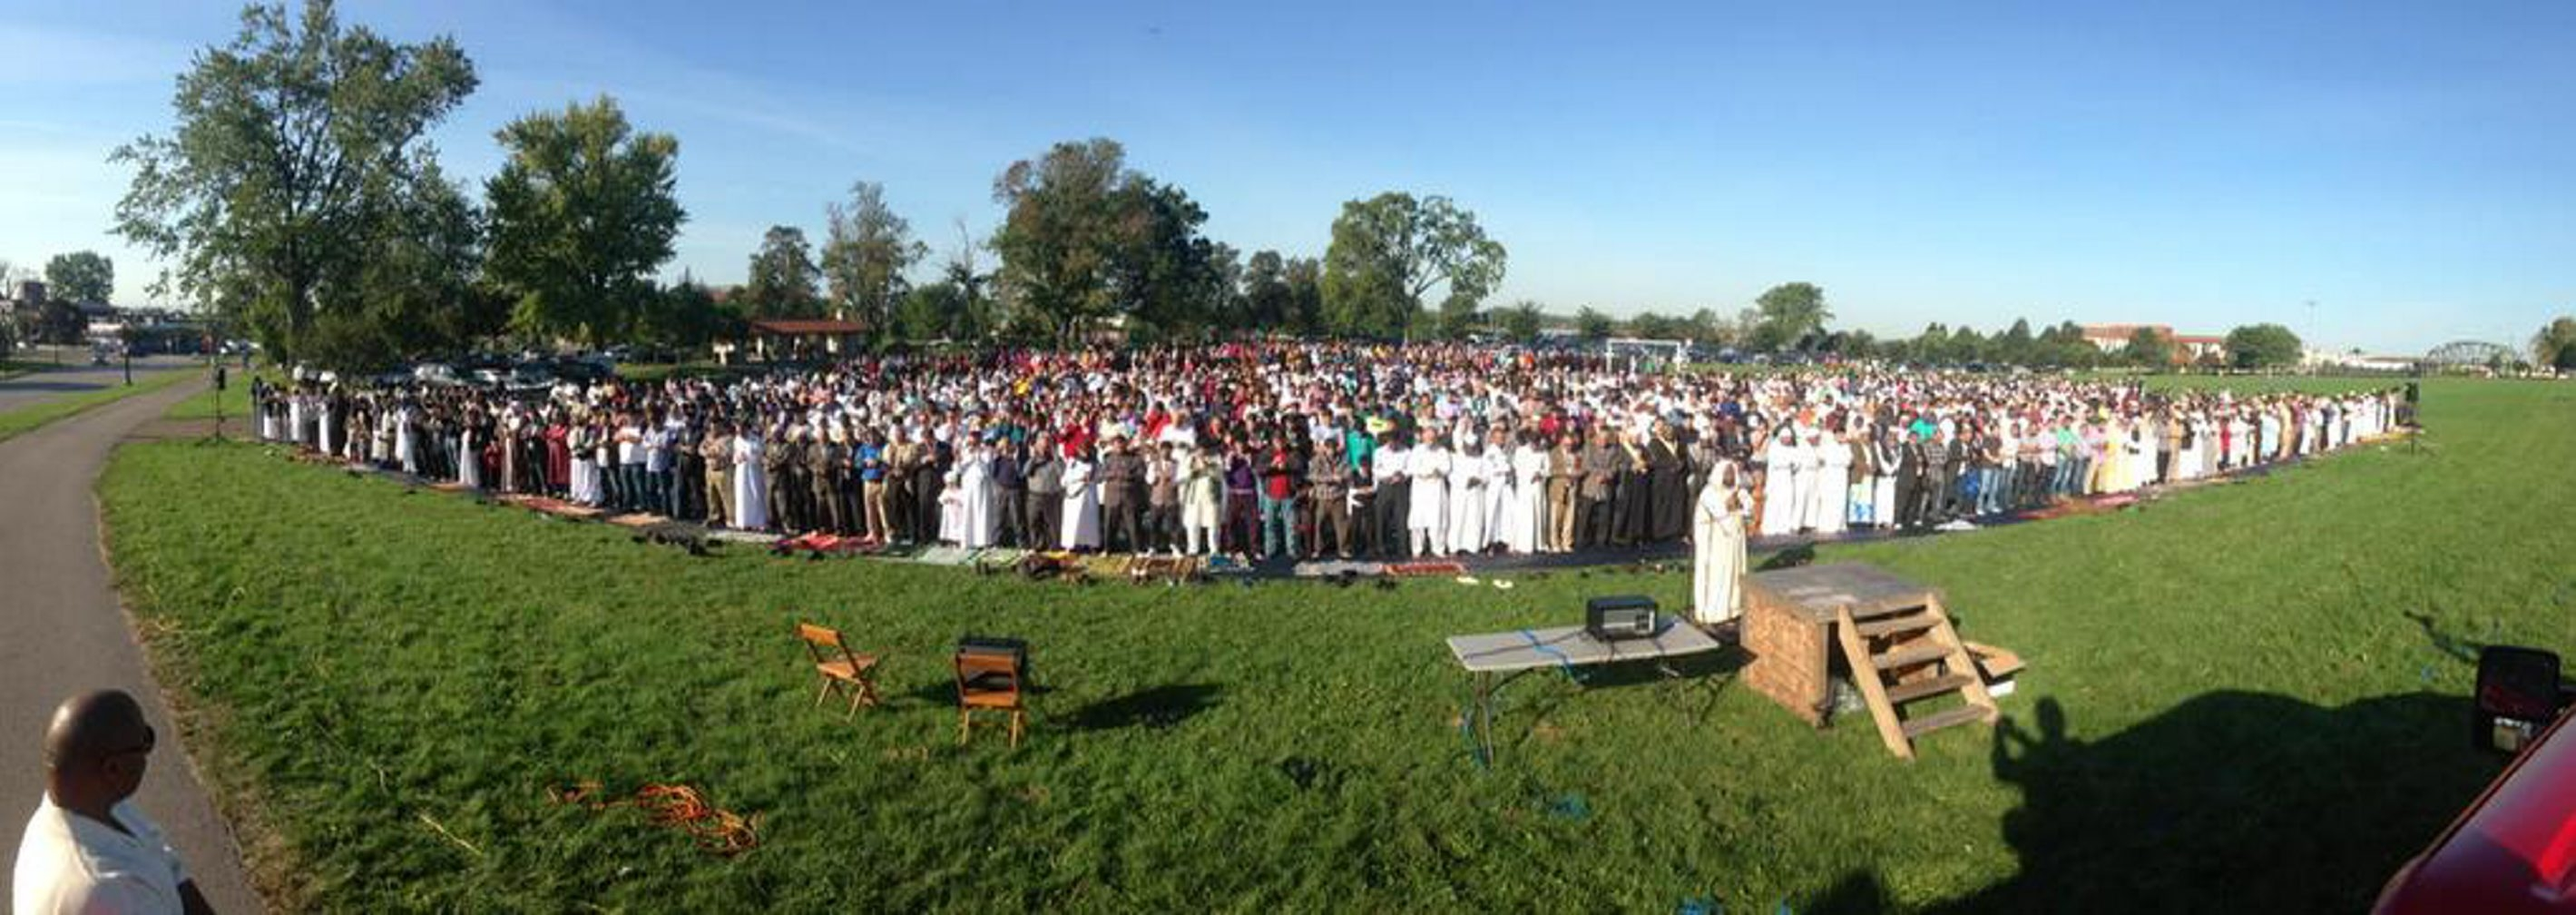 Thousands of area Muslims gather for the celebration of Eid al-Adha in Buffalo's Front Park on Sept. 24. (John Hickey/Buffalo News)